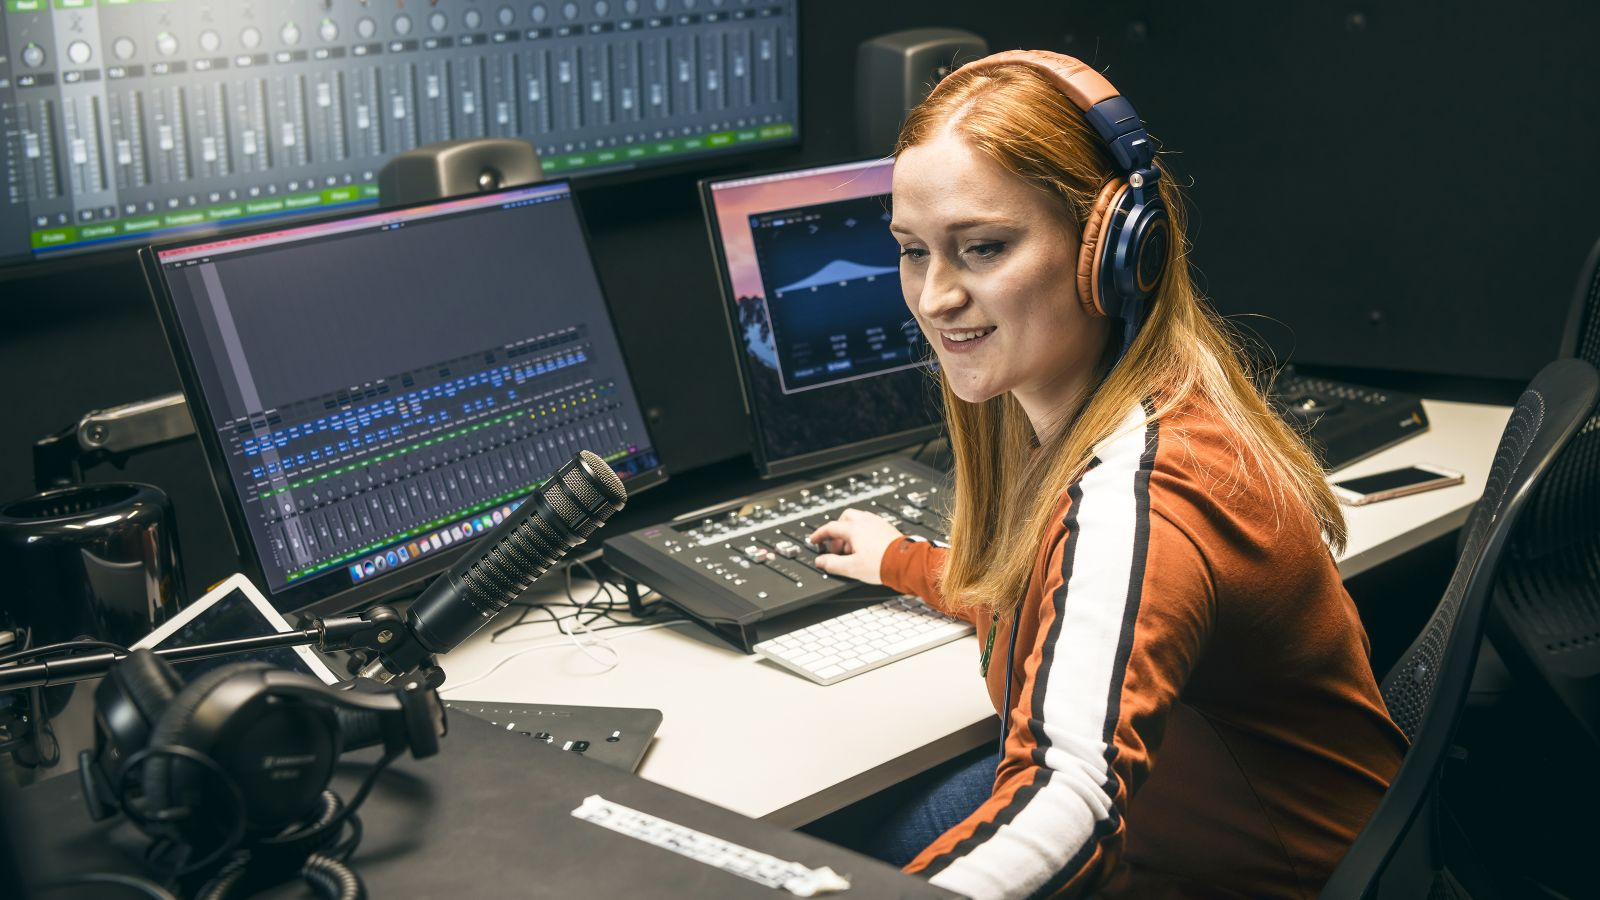 A female student with long red hair wears headphones while operating equipment in a recording studio.